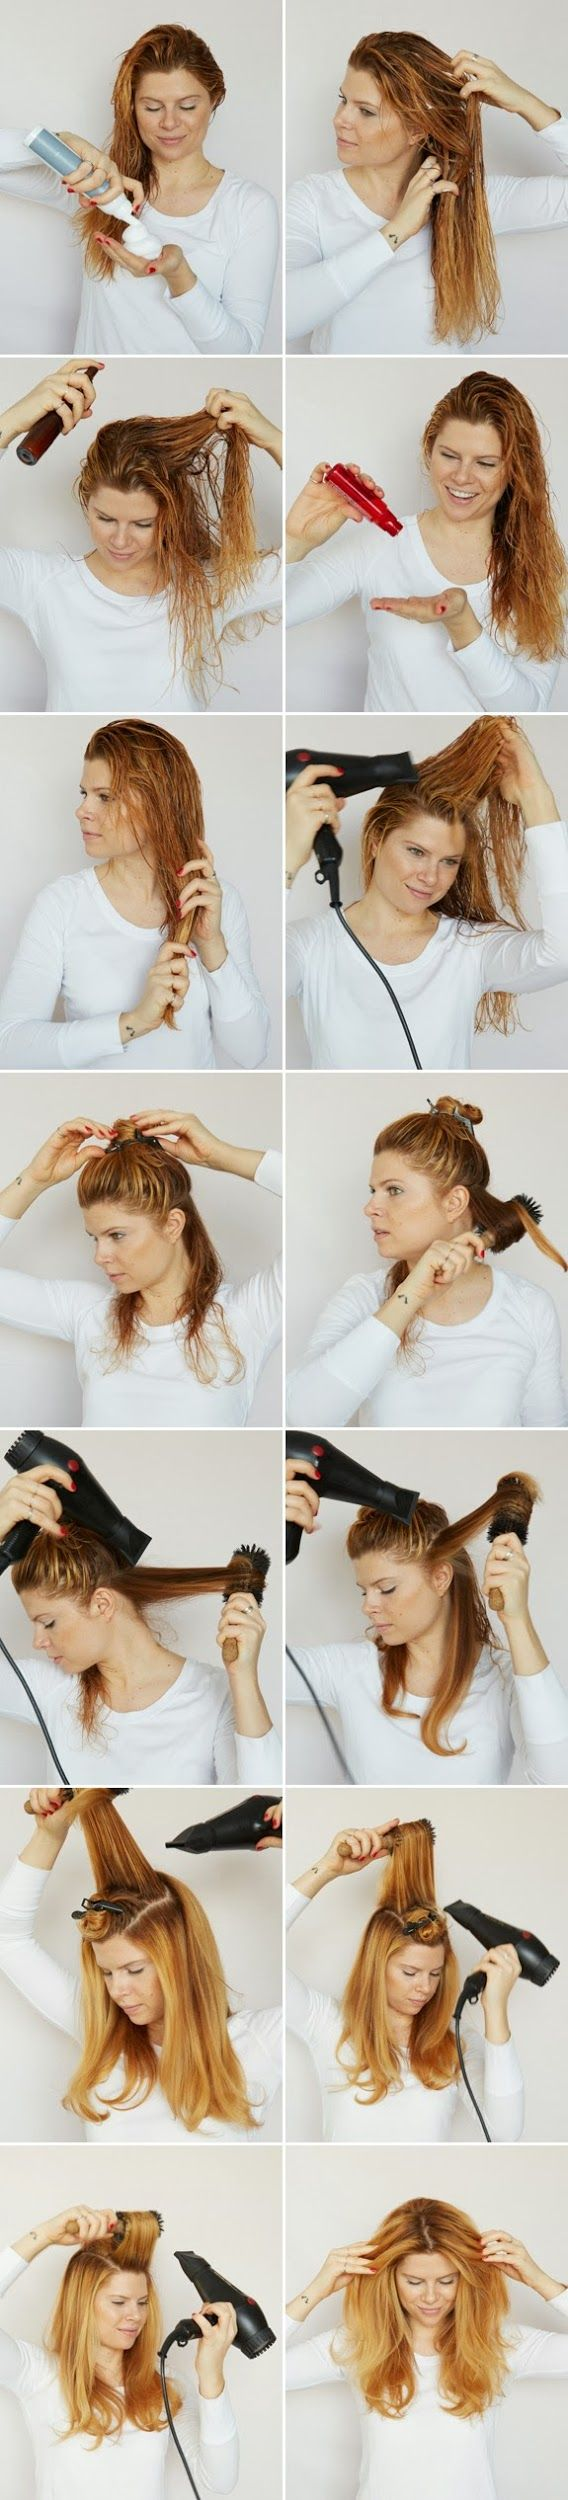 How to blow dry your hair like a hair stylist.